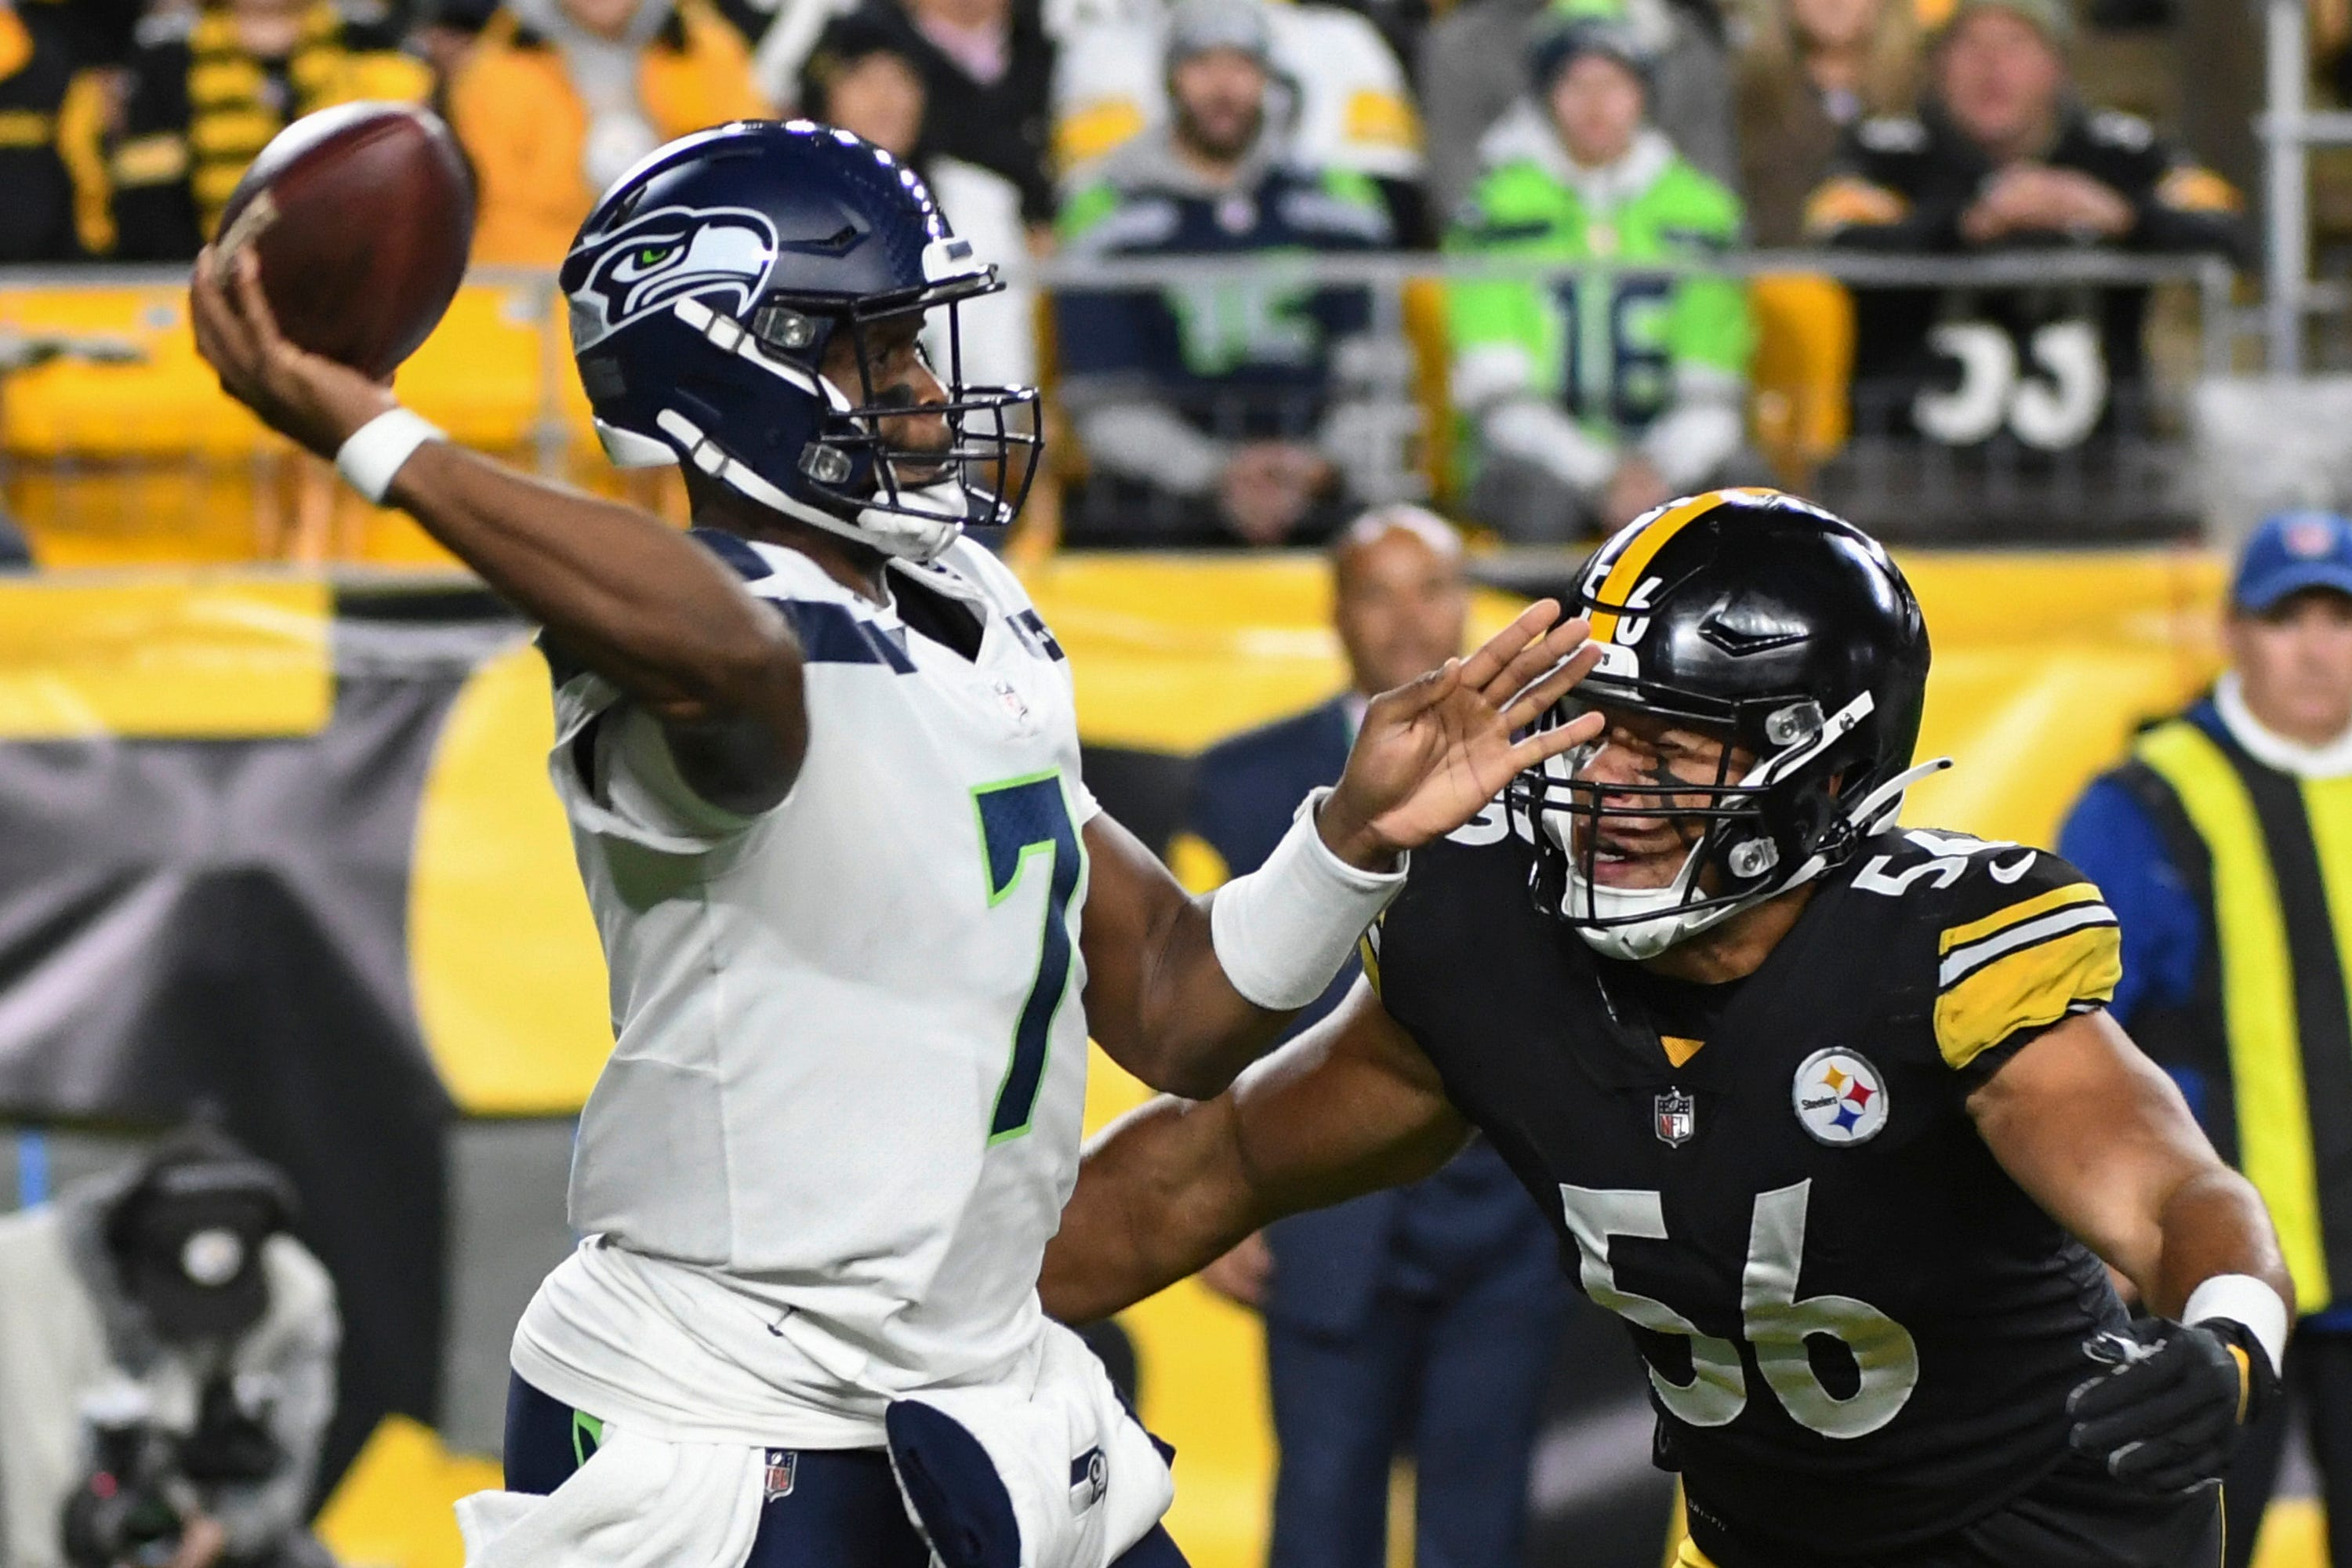 Slumping Seahawks host rested Saints in key NFC matchup